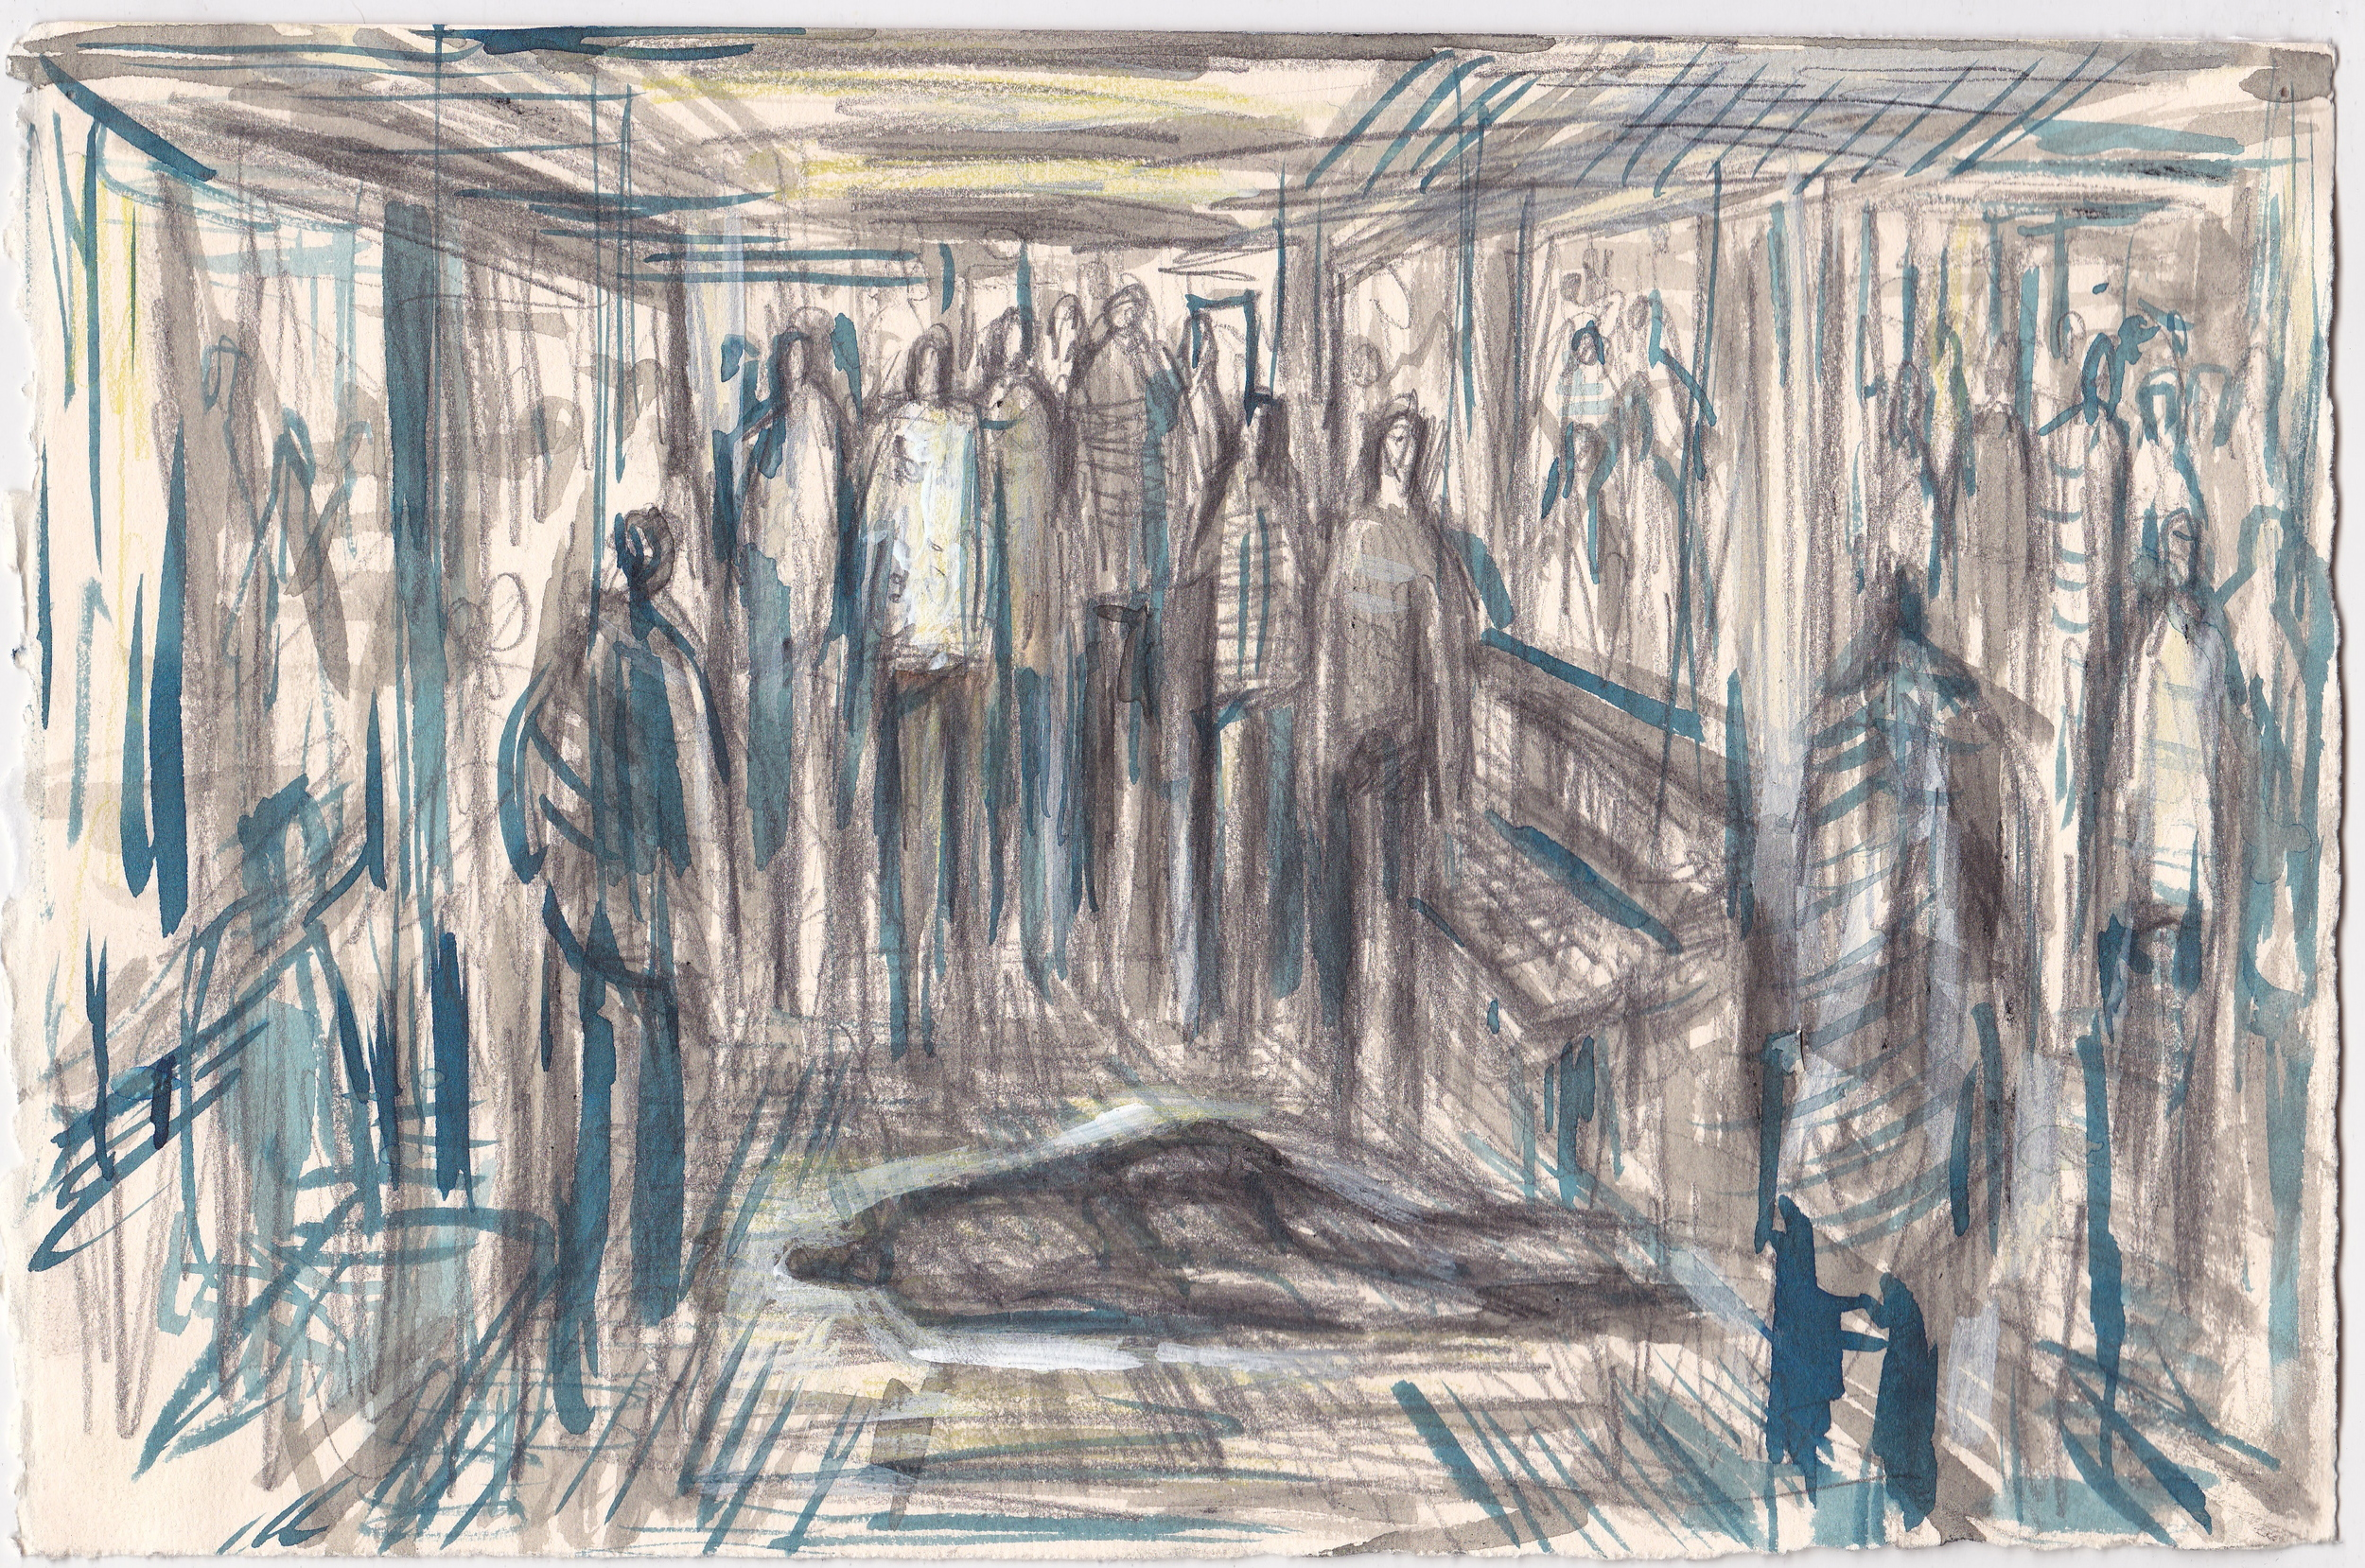 Augury of Death on the E Train , 2013, graphite, colored pencil and ink on paper, 7.5x11 inches